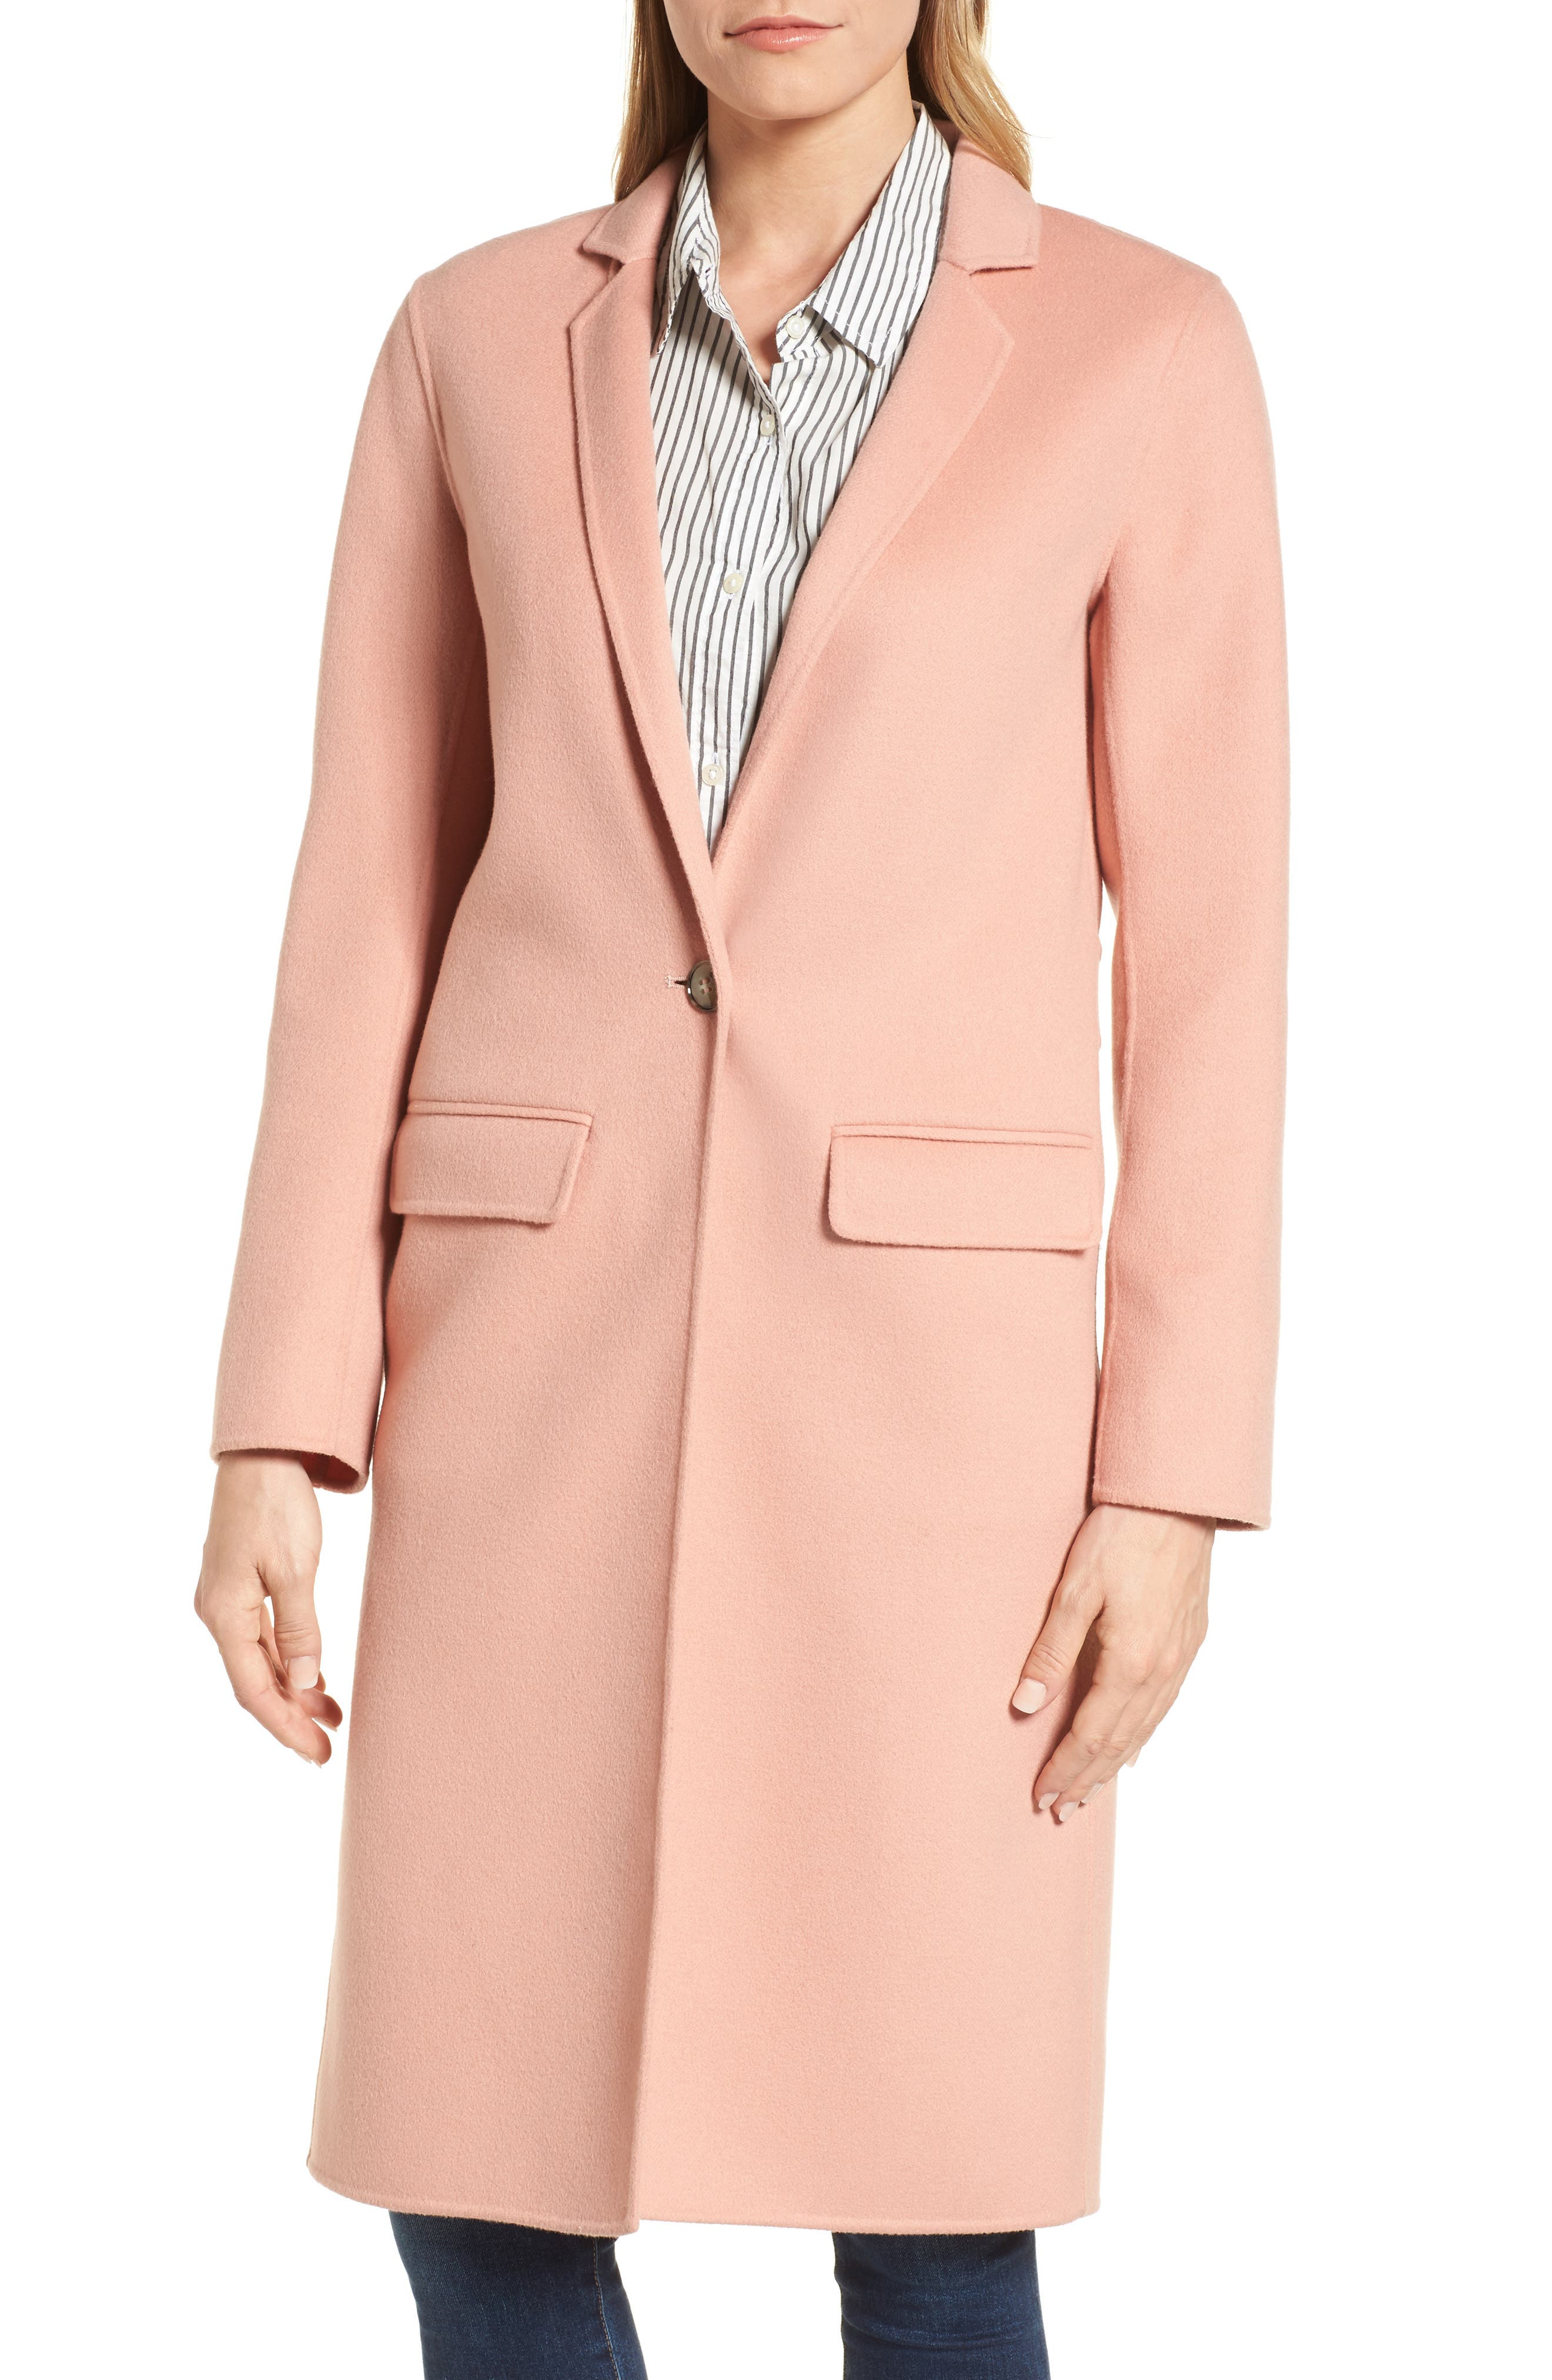 MACKAGE Double-Face Wool Jacket, Main, color, 958